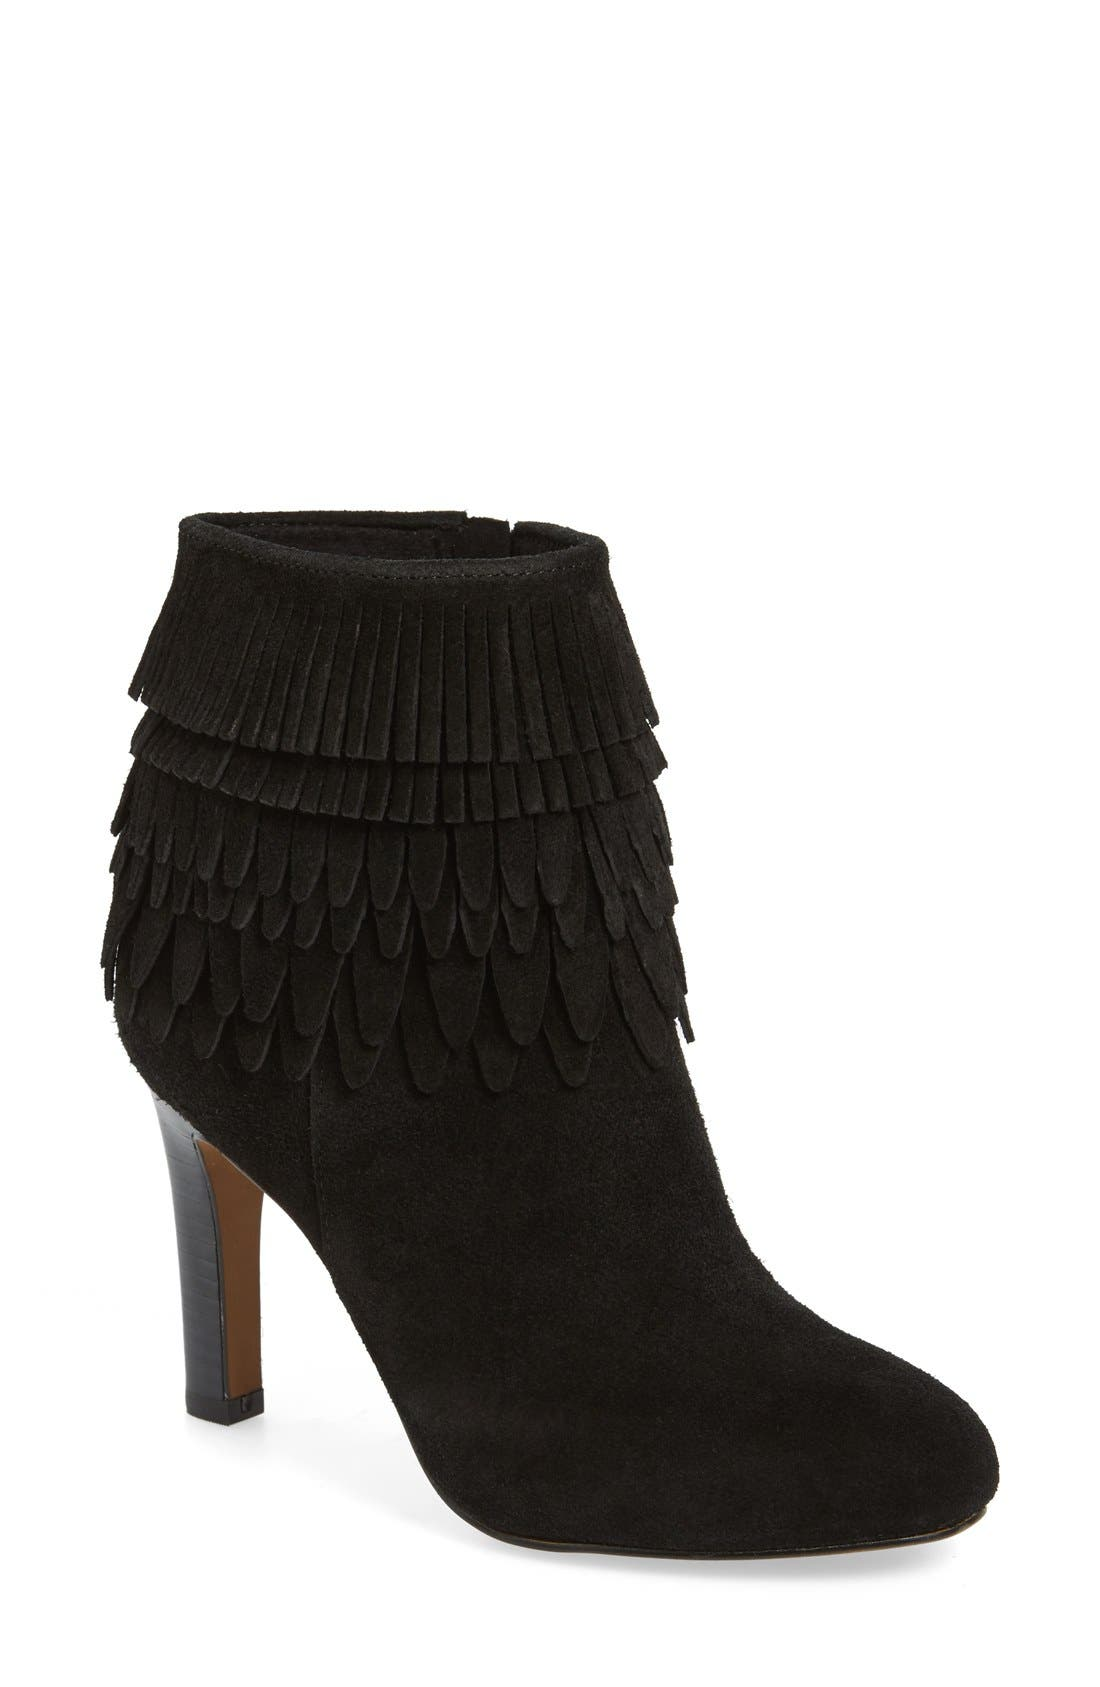 'Layton' Fringe Bootie,                         Main,                         color, 001